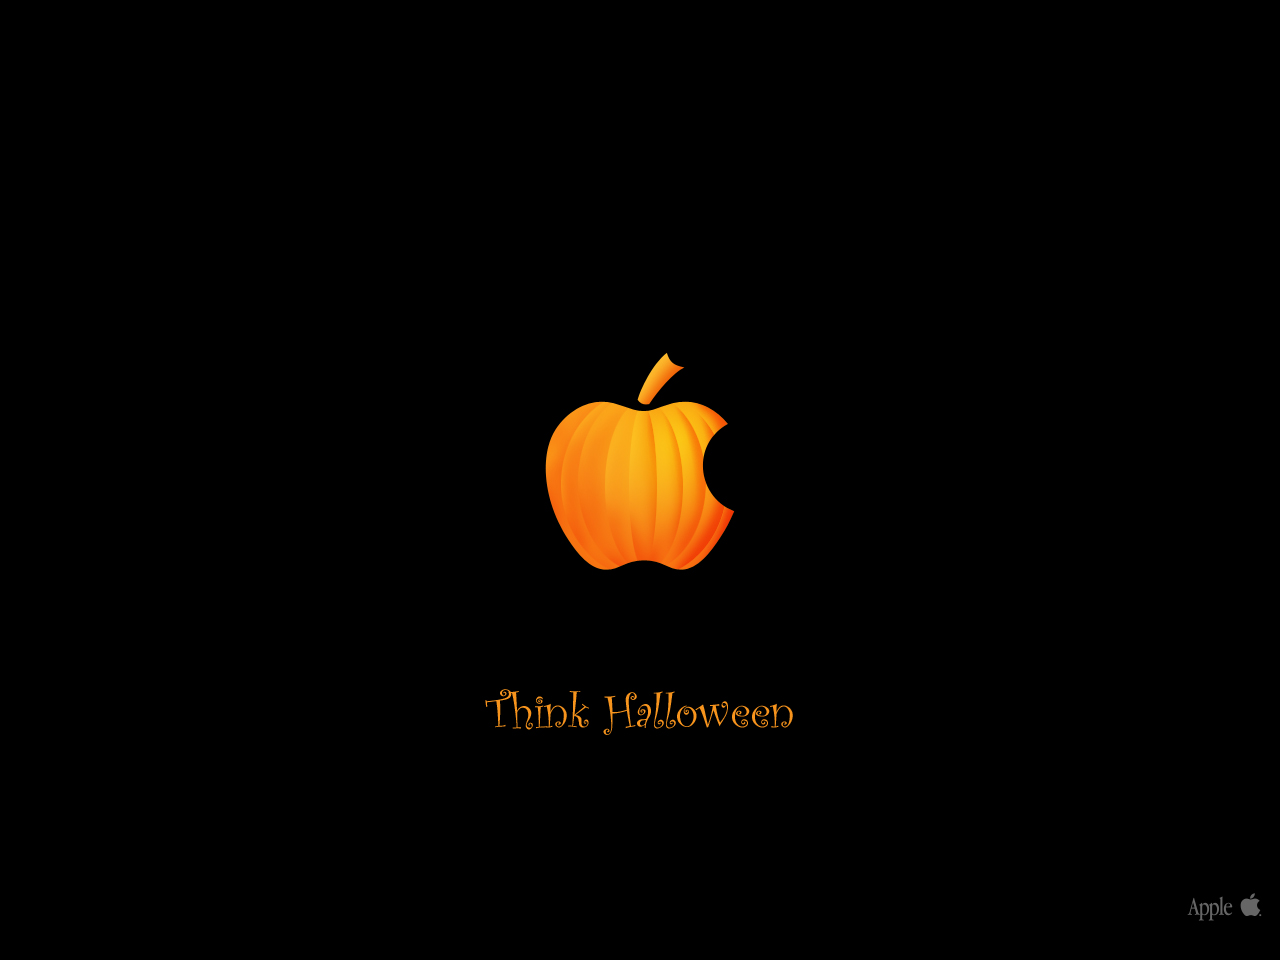 Cool Halloween Wallpapers and Halloween Icons for Download 1280x960